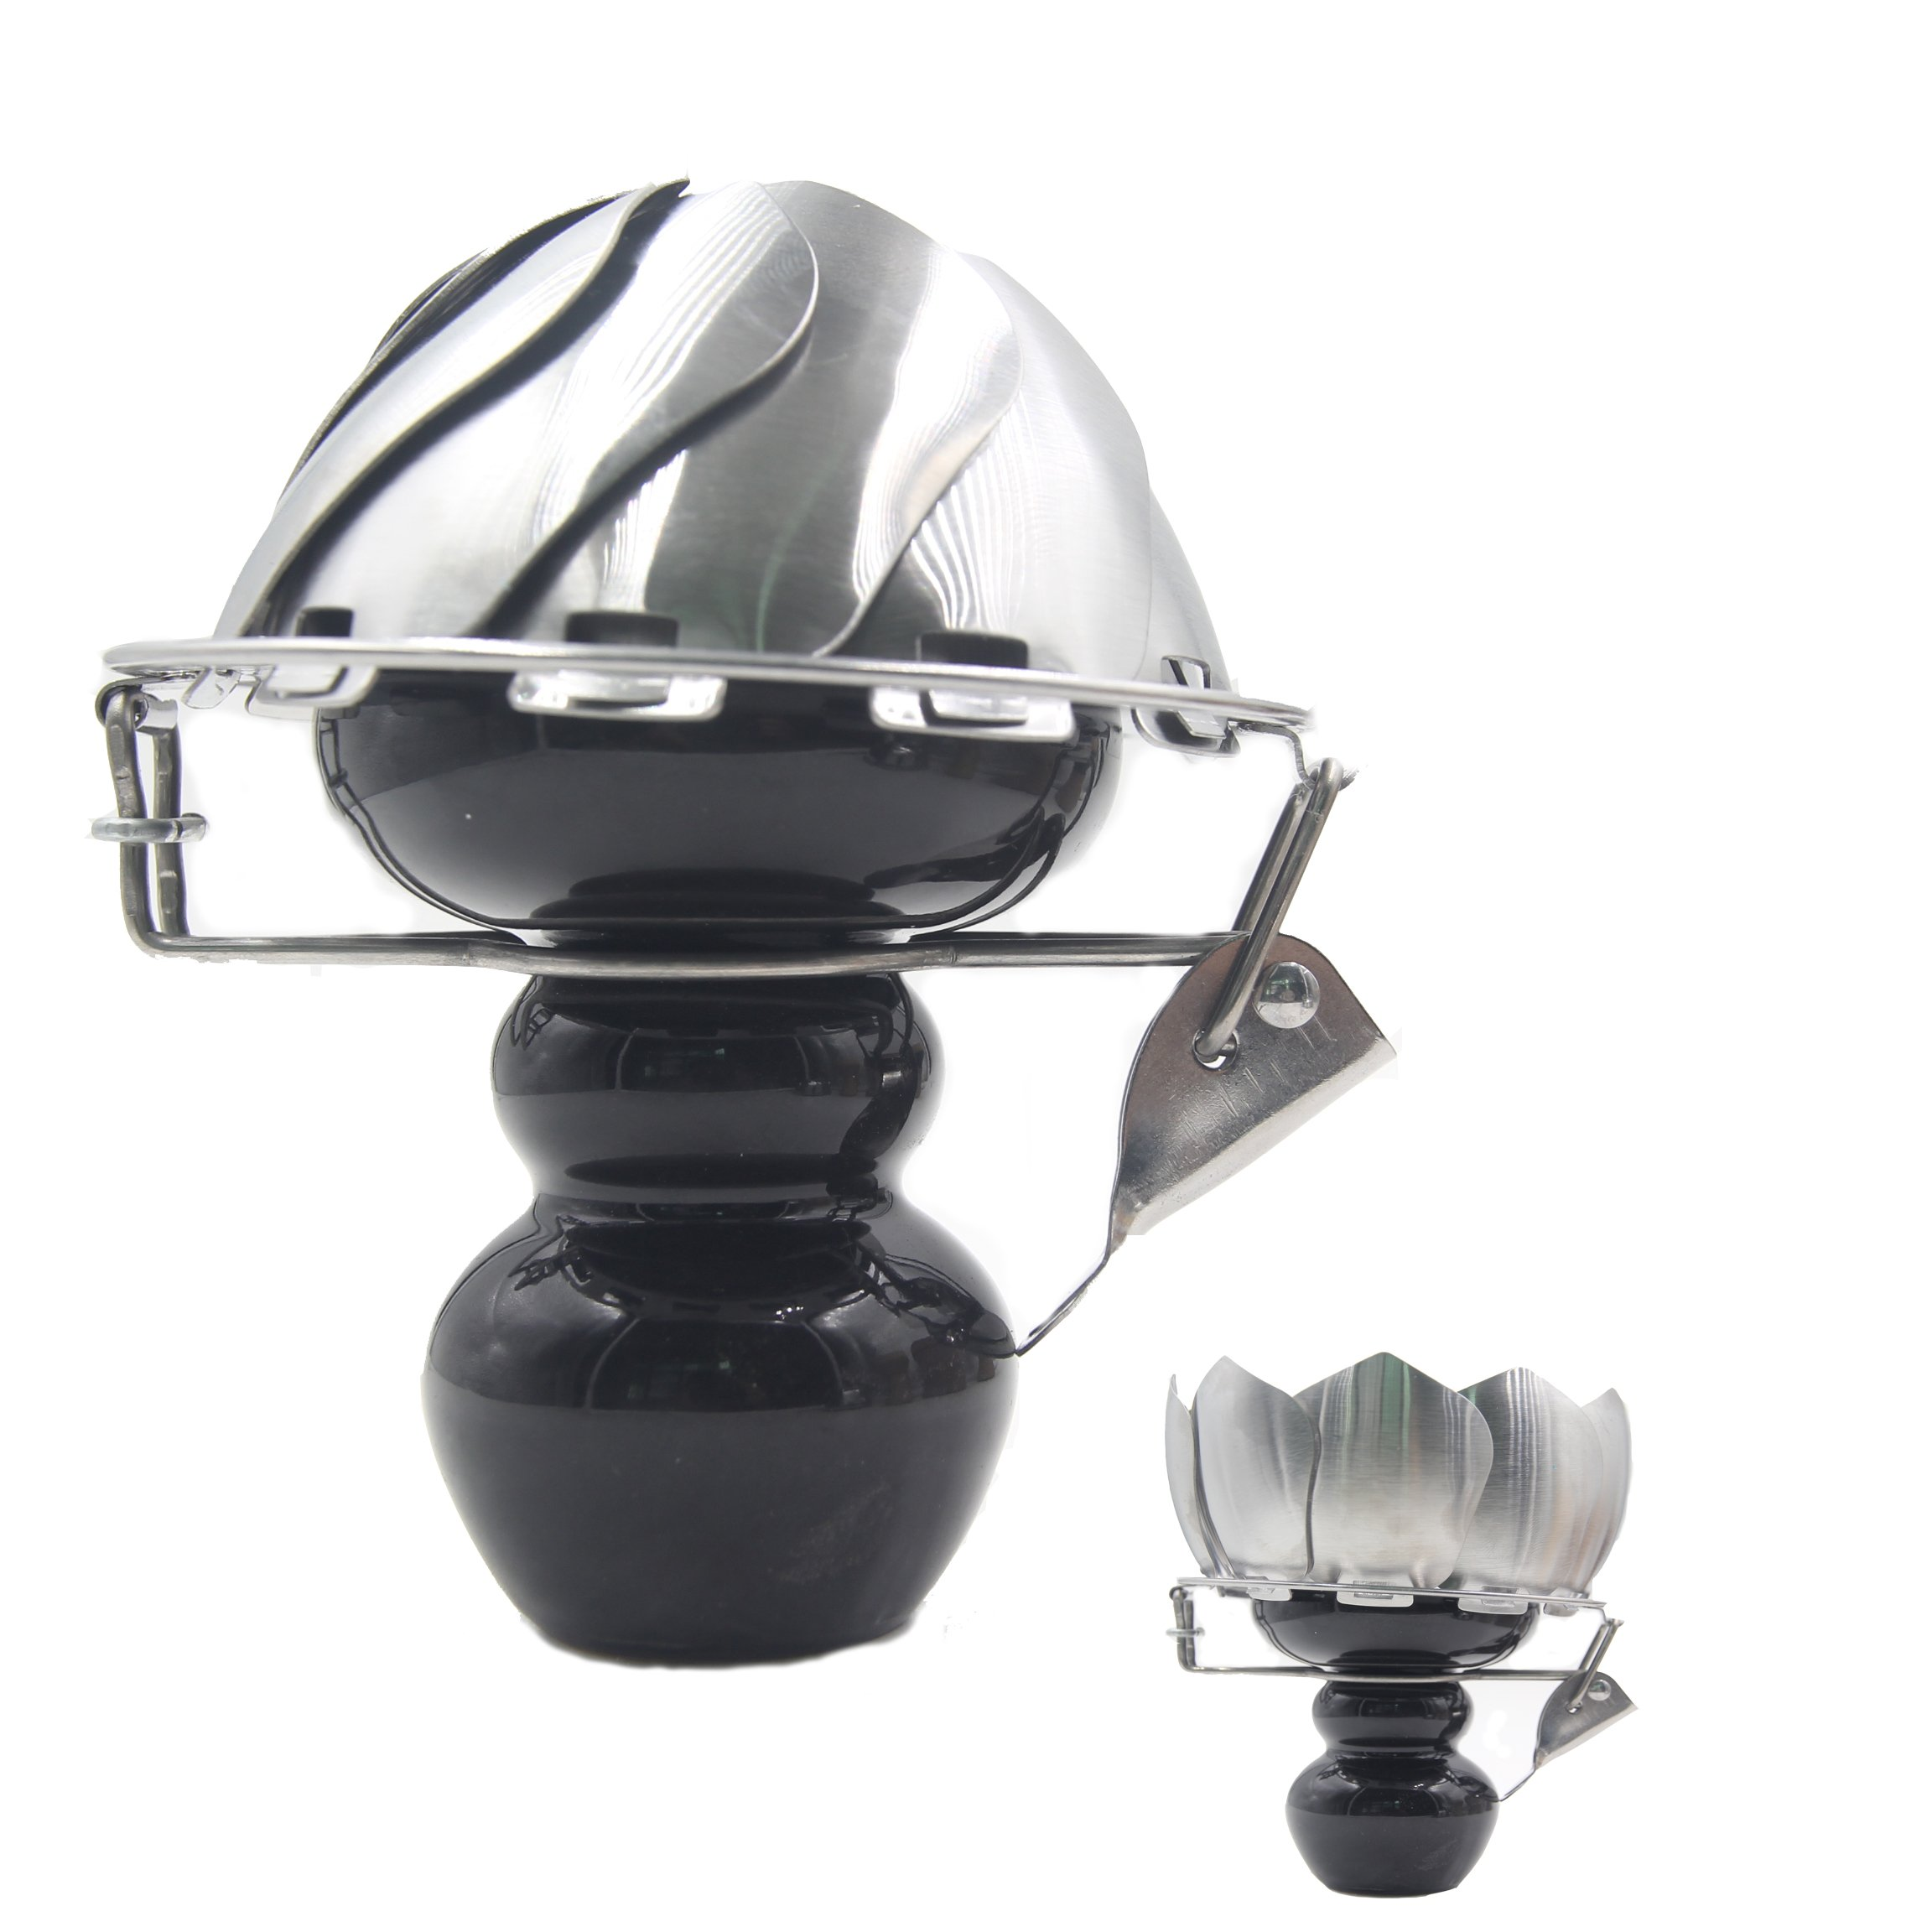 Hookah Charcoal Holder Ceramic Head Charcoal Screen Funnel Burner Foldable Charcoal Bowl With Wind Cover For Hookah (Black)